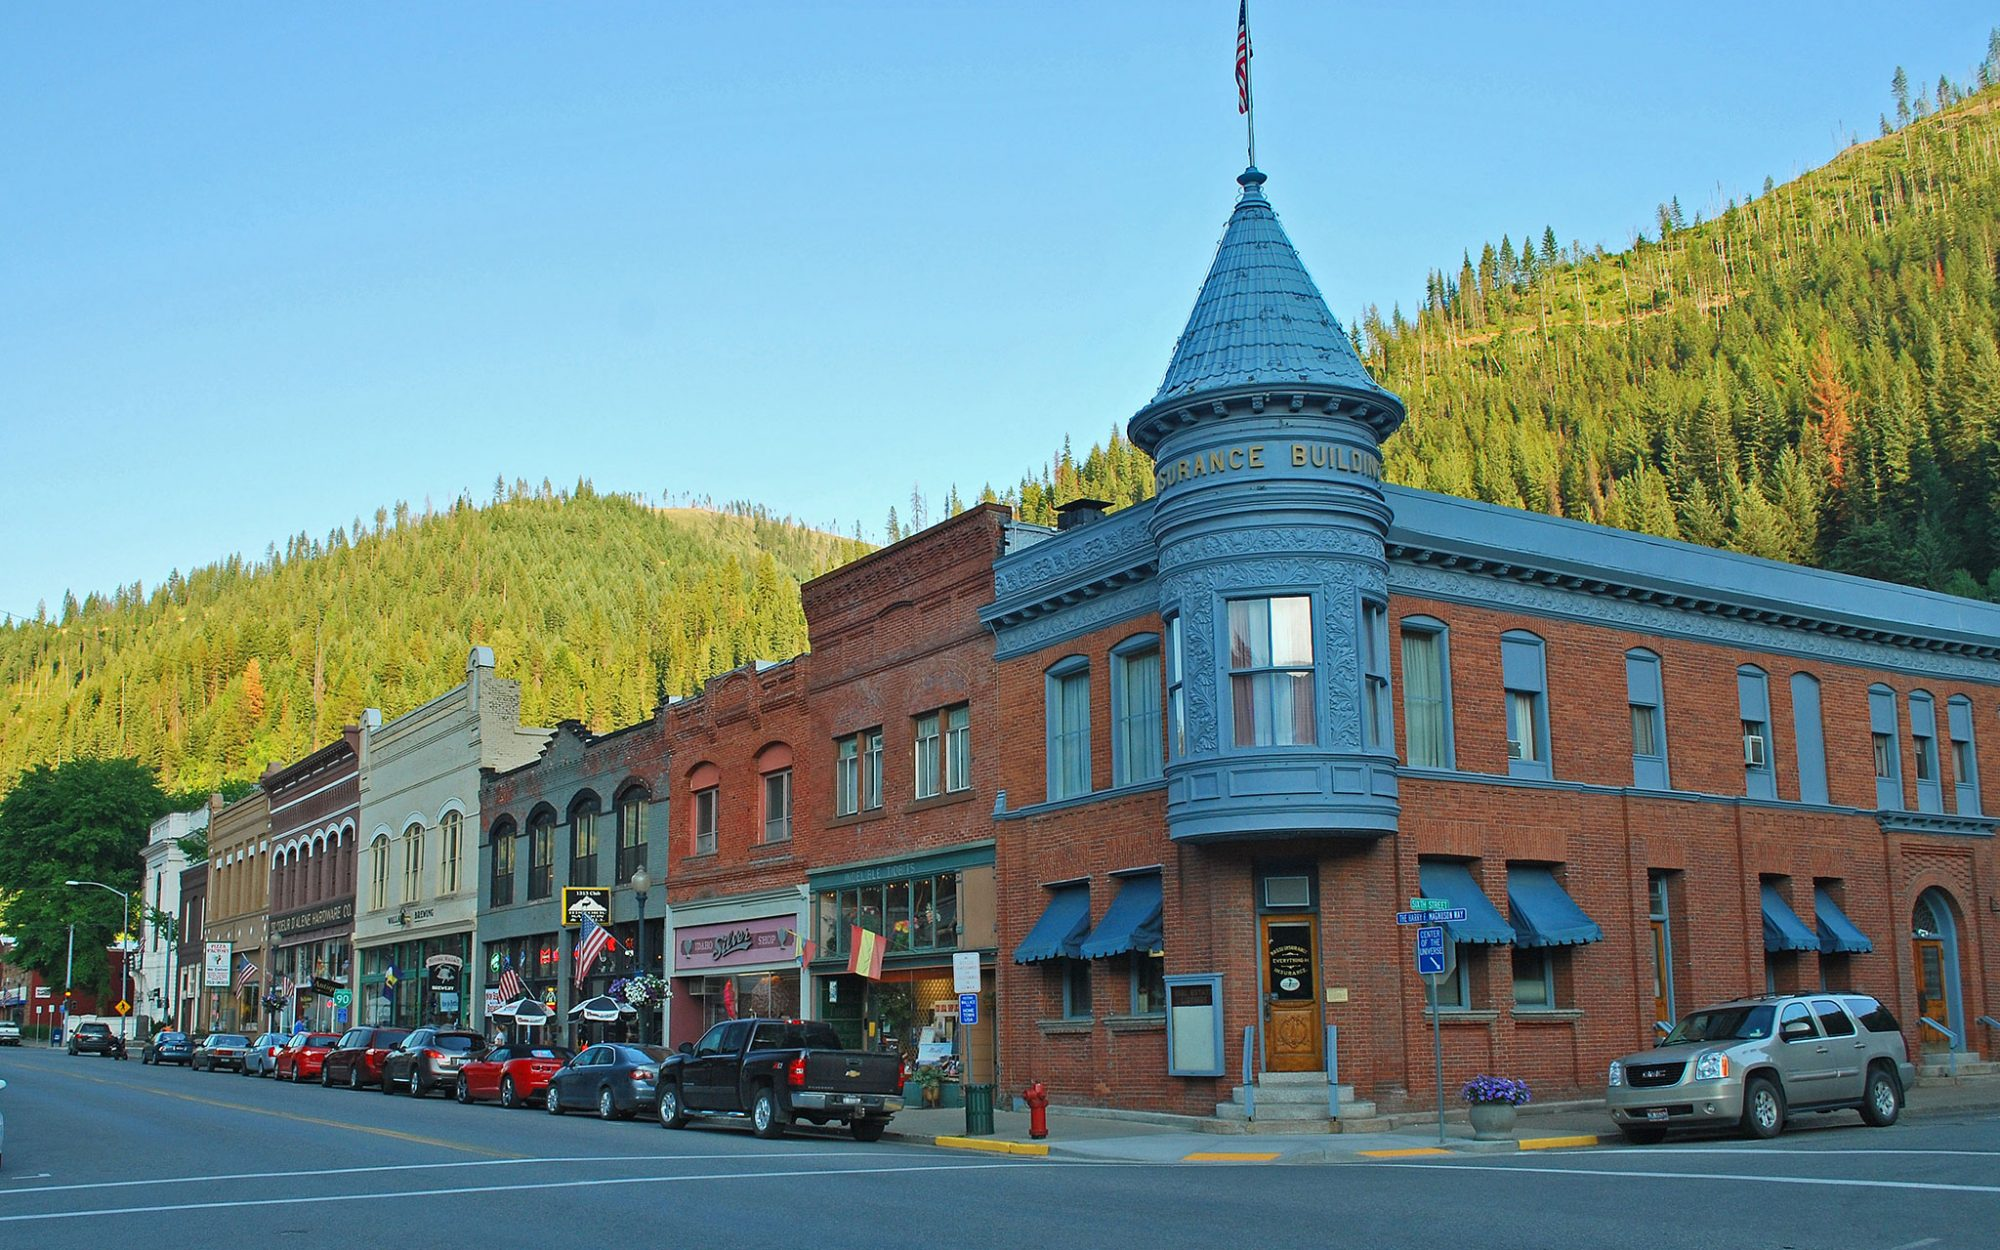 America's greatest main streets: Wallace